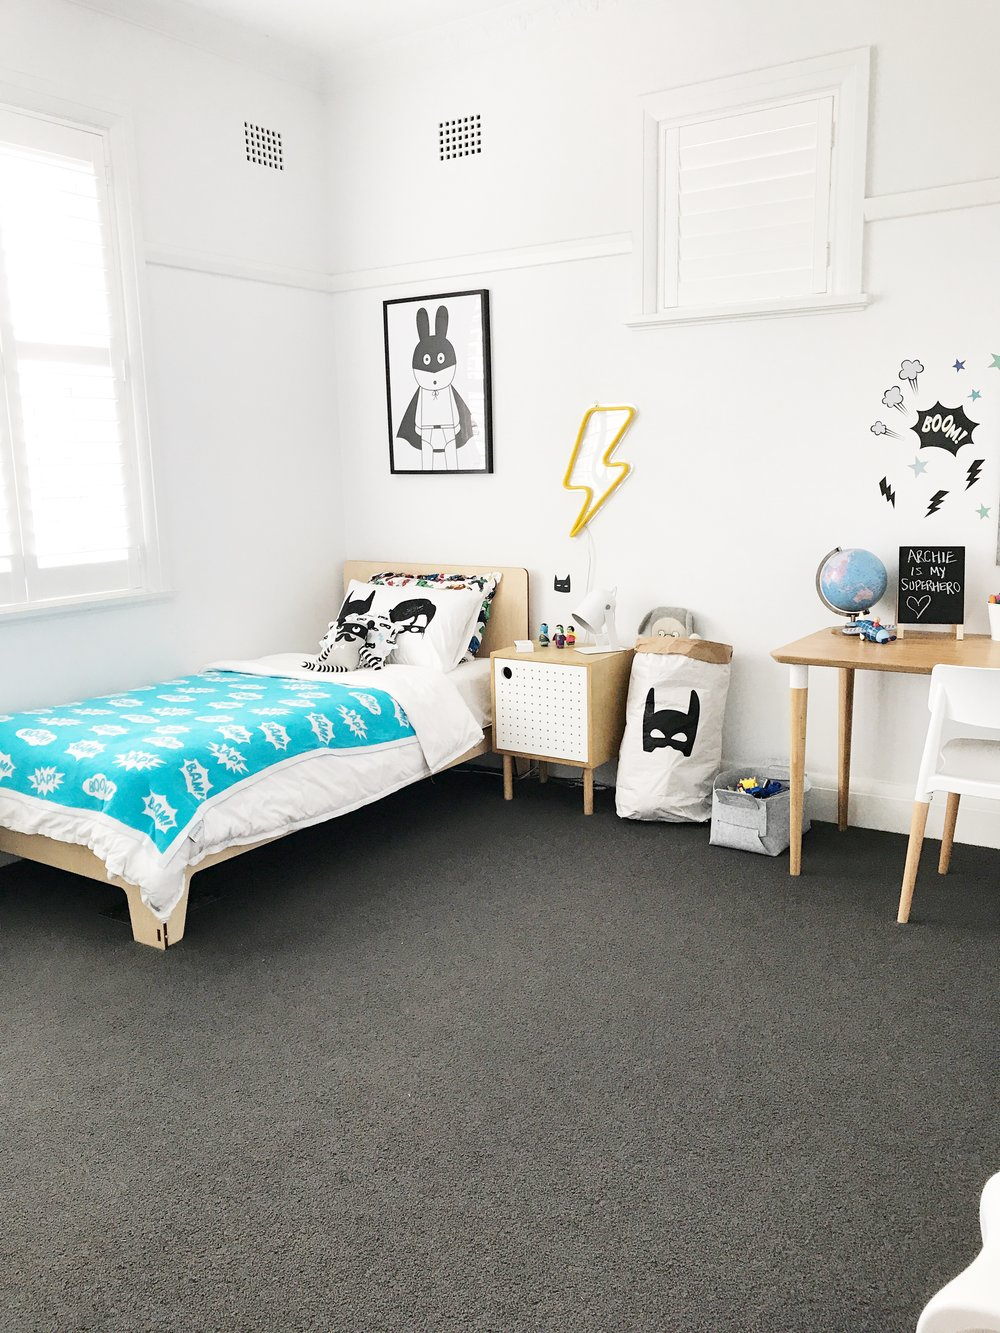 Kids Bedroom 2.JPG